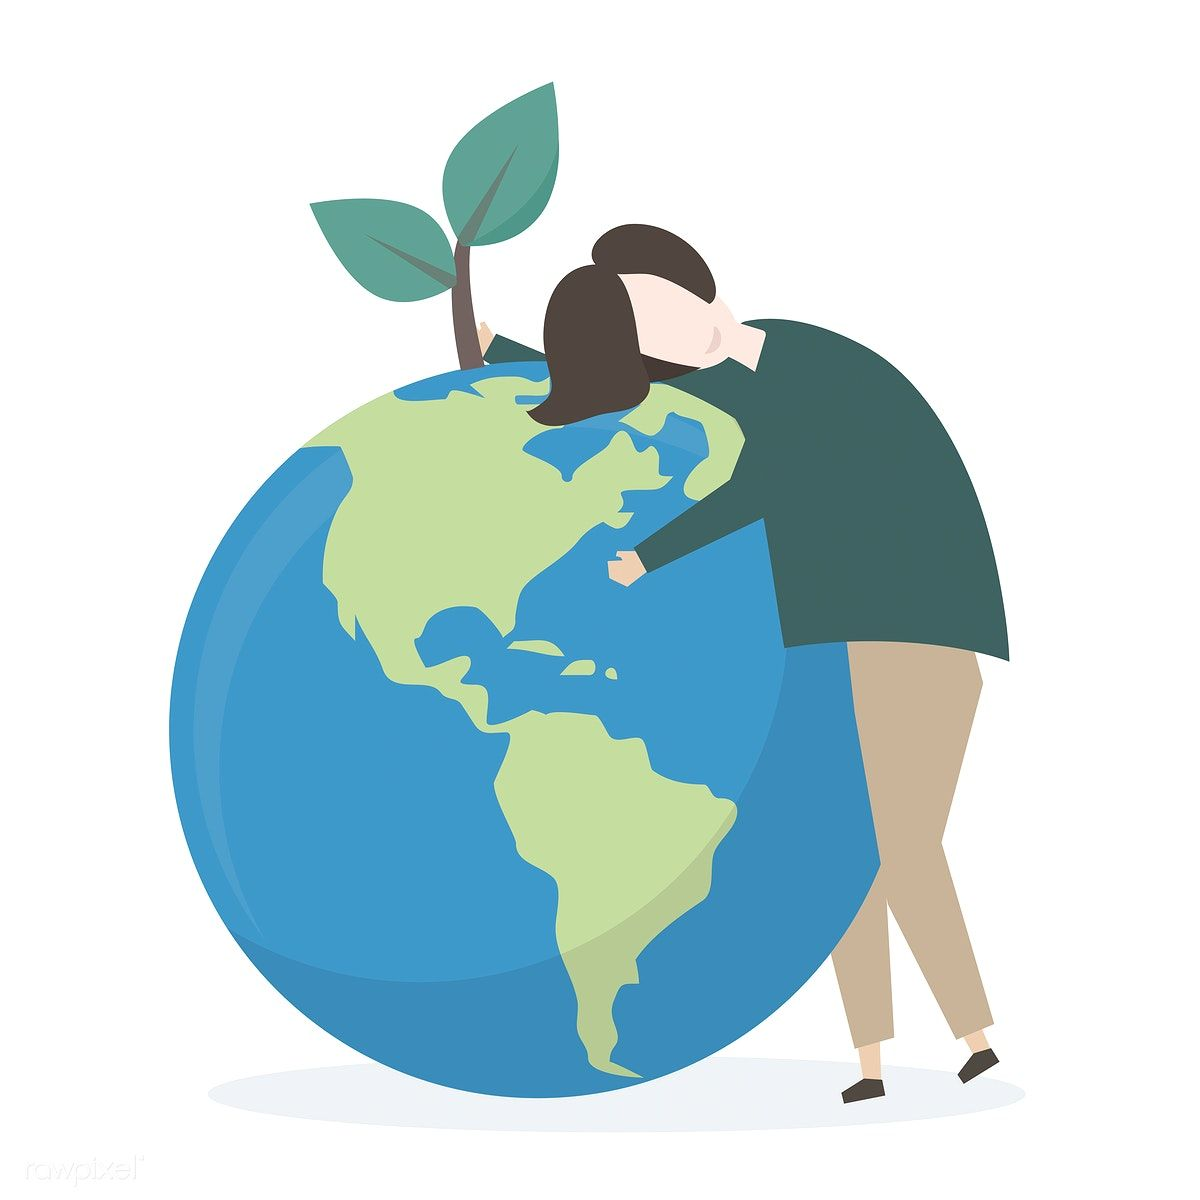 Environmental Conservation And Protection Of Our World Free Image By Rawpixel Com Environmental Conservation Conservation Illustration